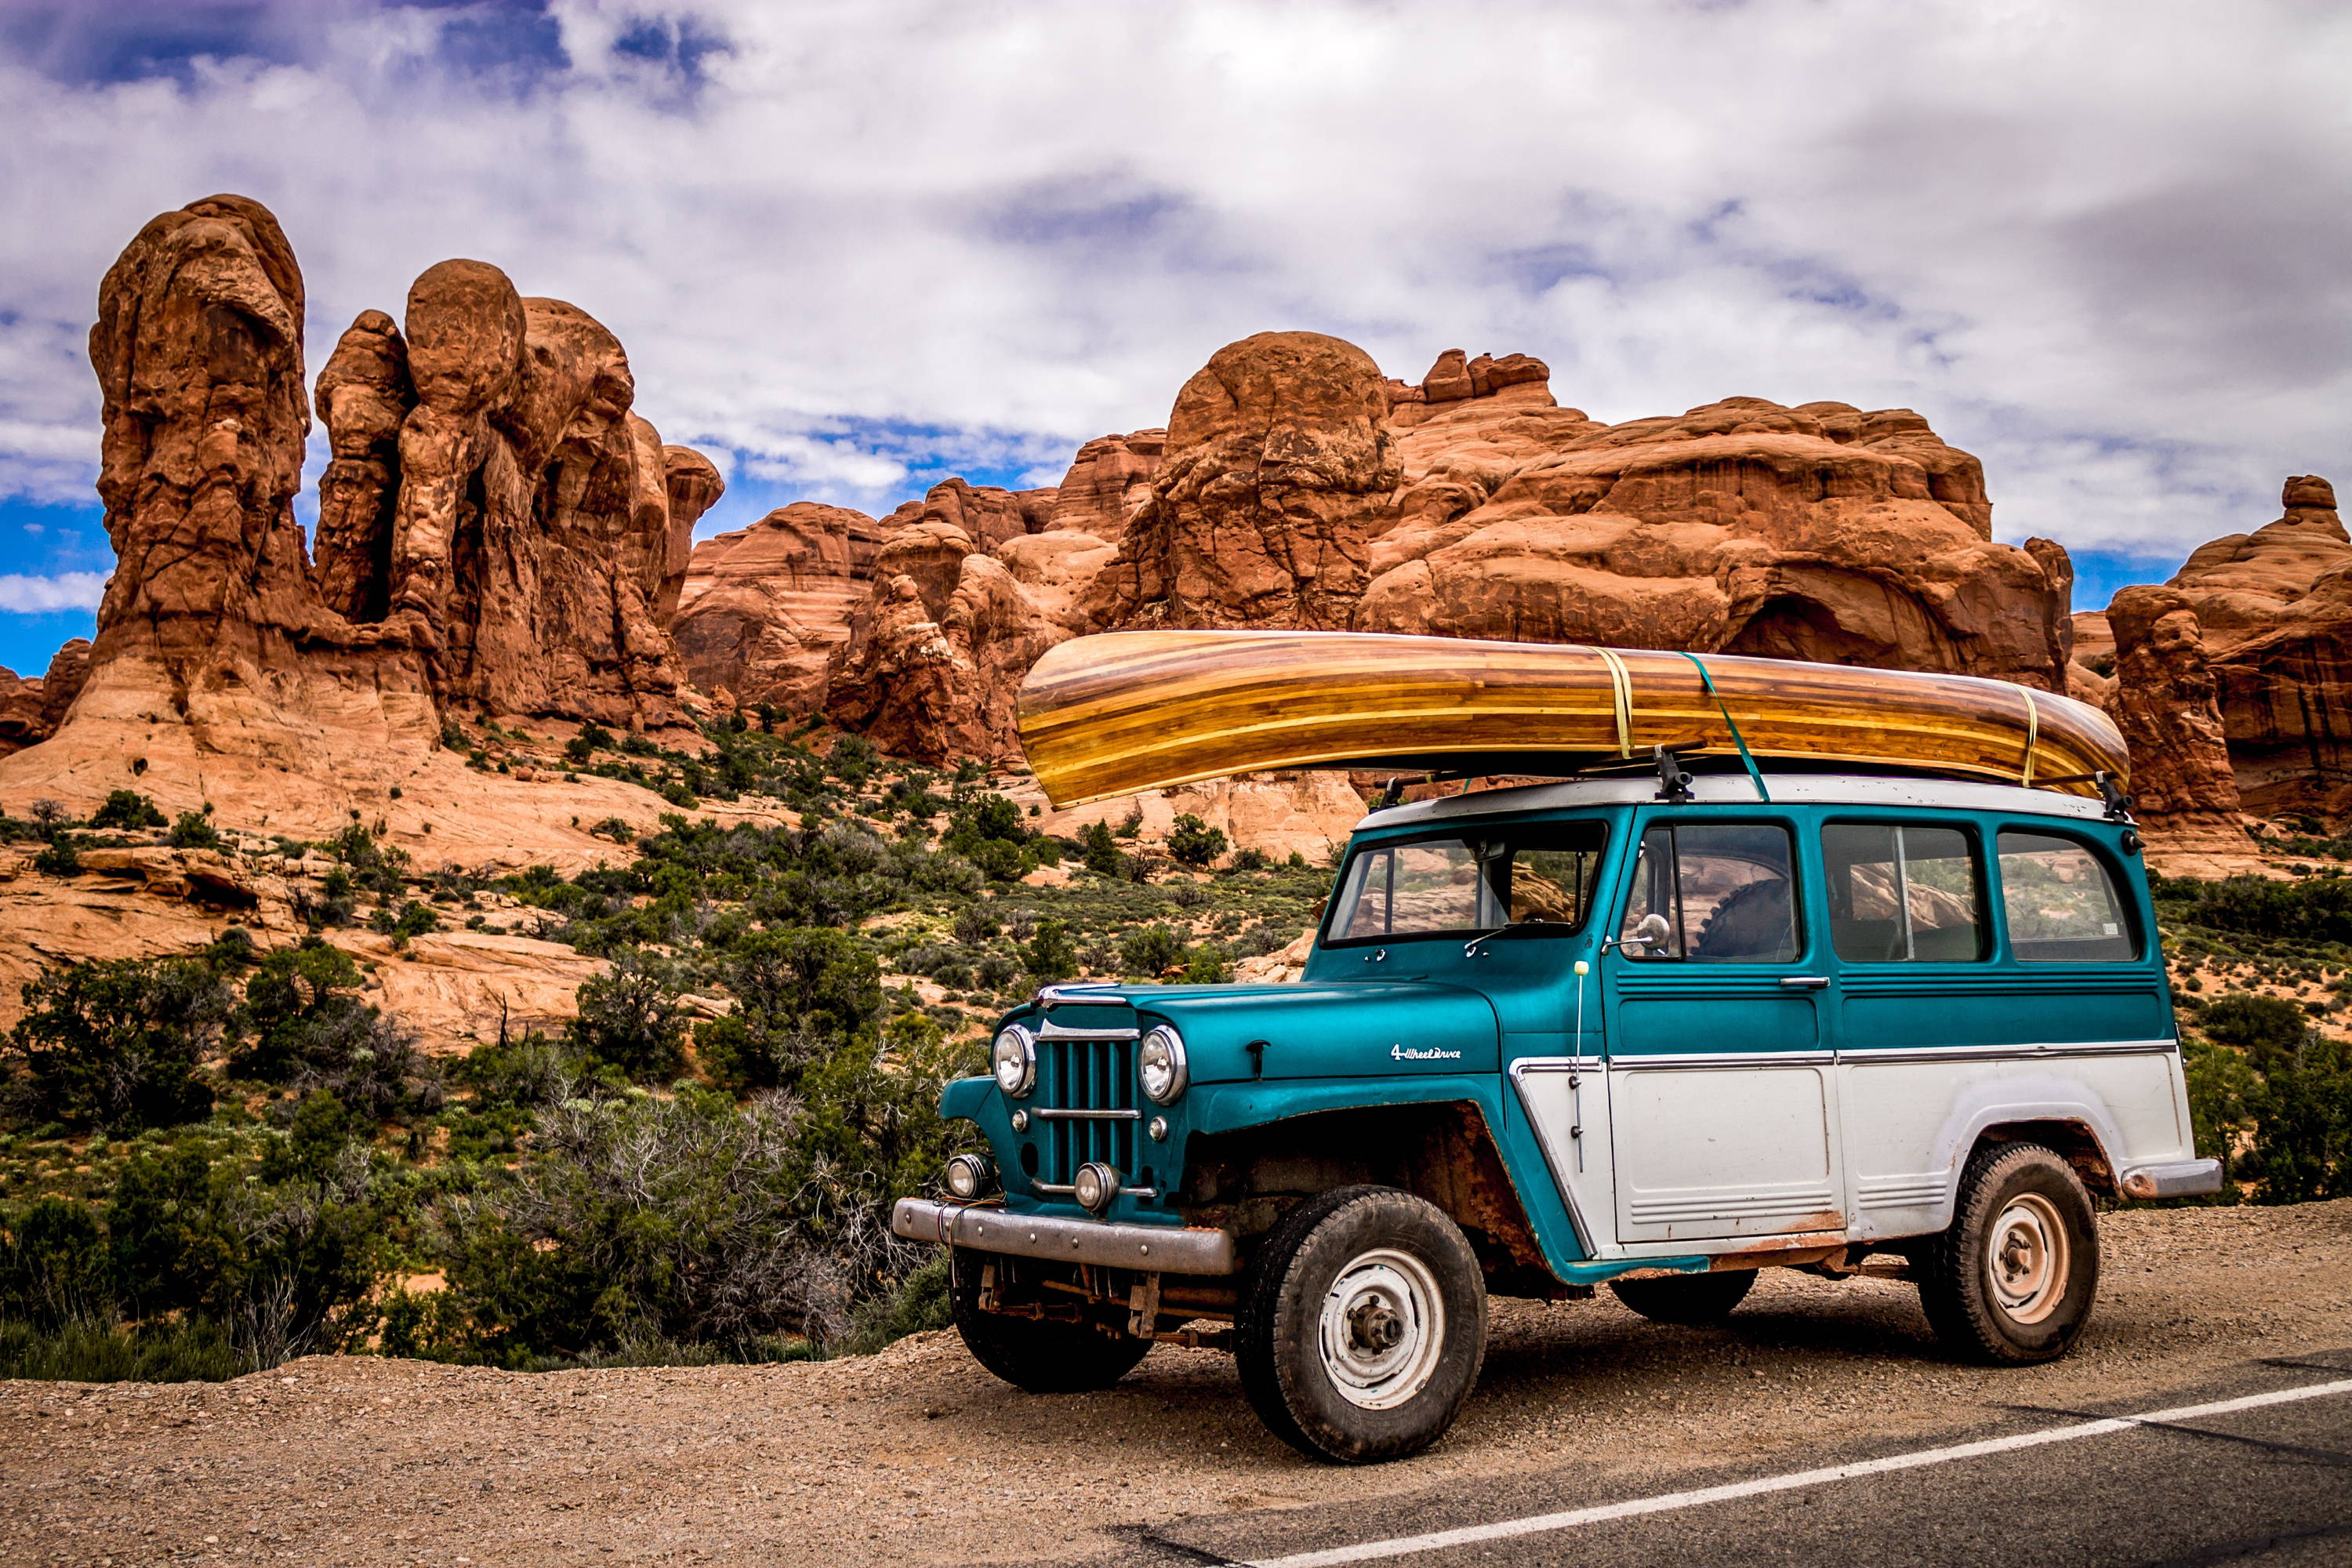 Best National Parks in California & Beyond: Old teal and white SUV with canoe on top sits on side of road in Arches National Park.